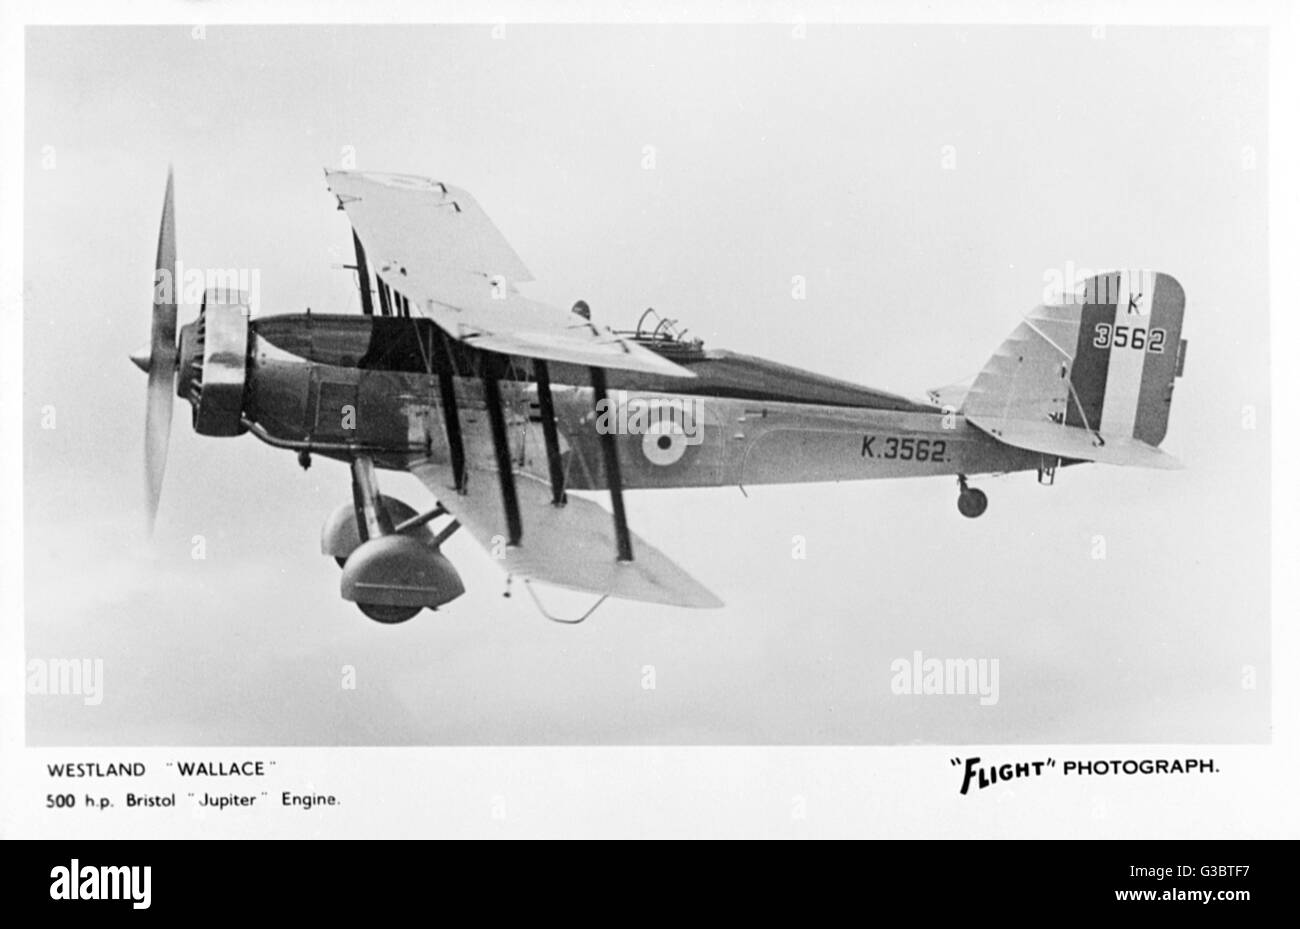 Westland Wallace British two-seat biplane K3562 with a 500hp Bristol Jupiter engine.      Date: 1933 - Stock Image